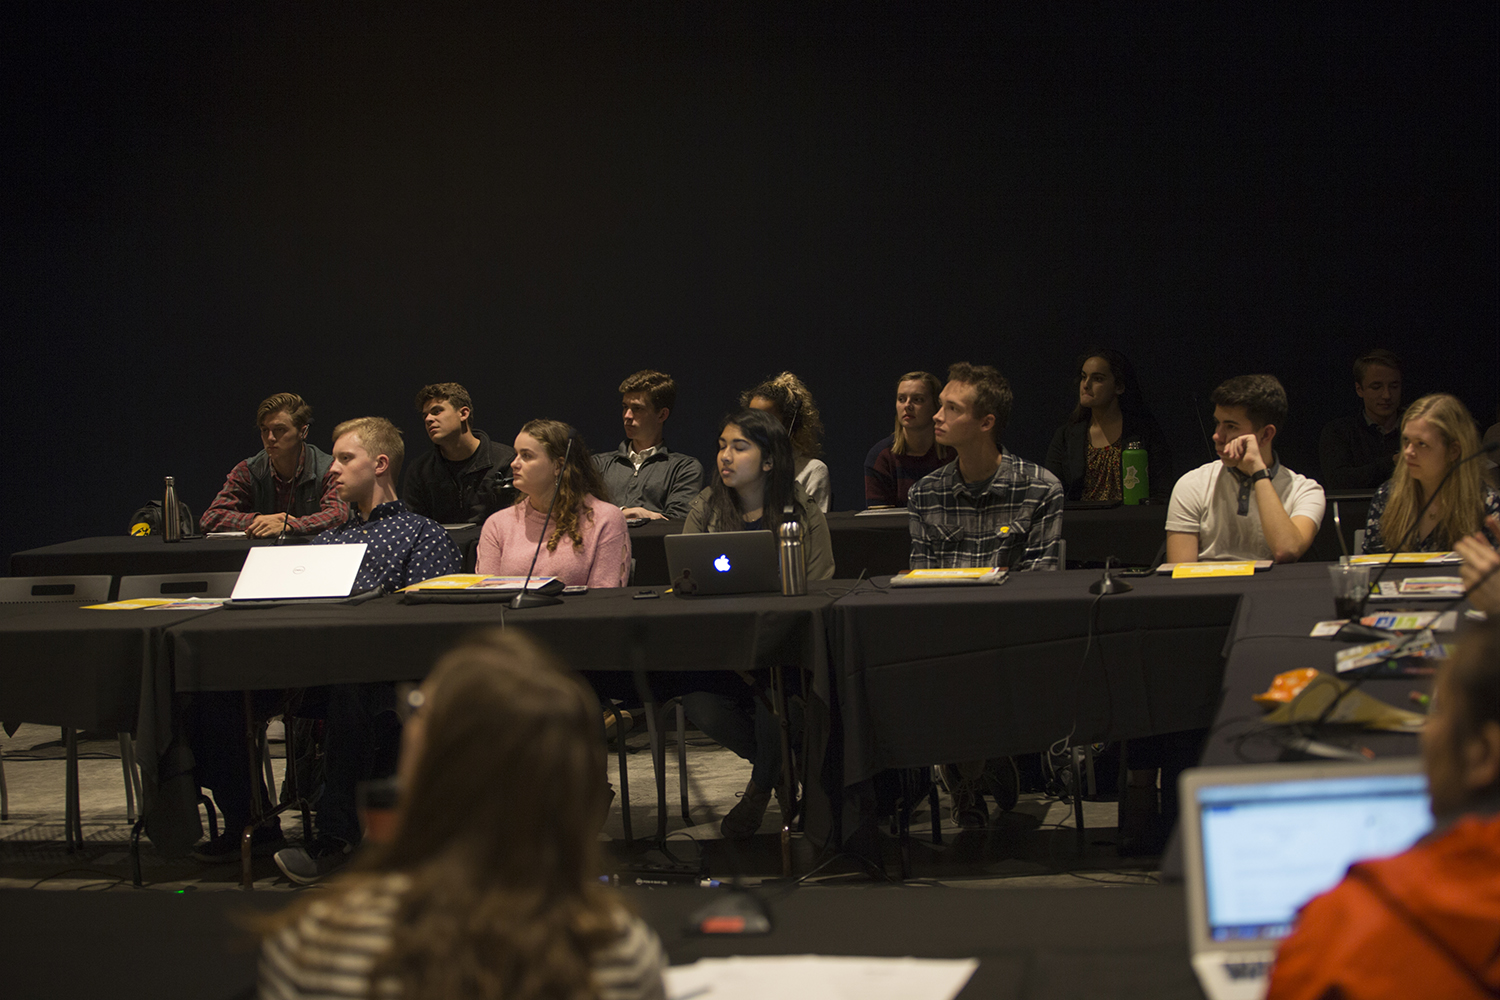 Sentators listen to a presentation during a UISG meeting on Tuesday, Oct. 15, 2019. Senators heard from guest speakers and considered legislation.